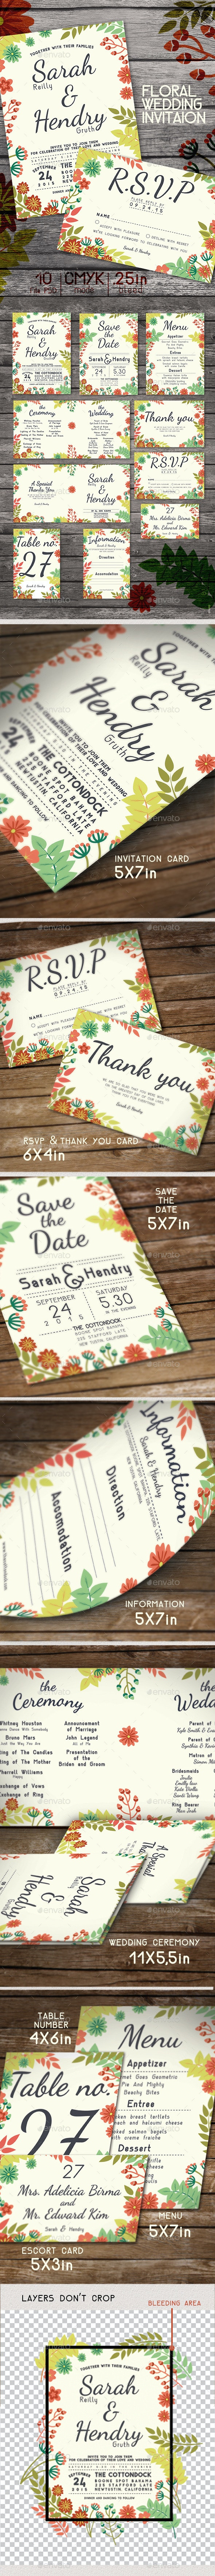 Wedding Package Floral Theme - Weddings Cards & Invites